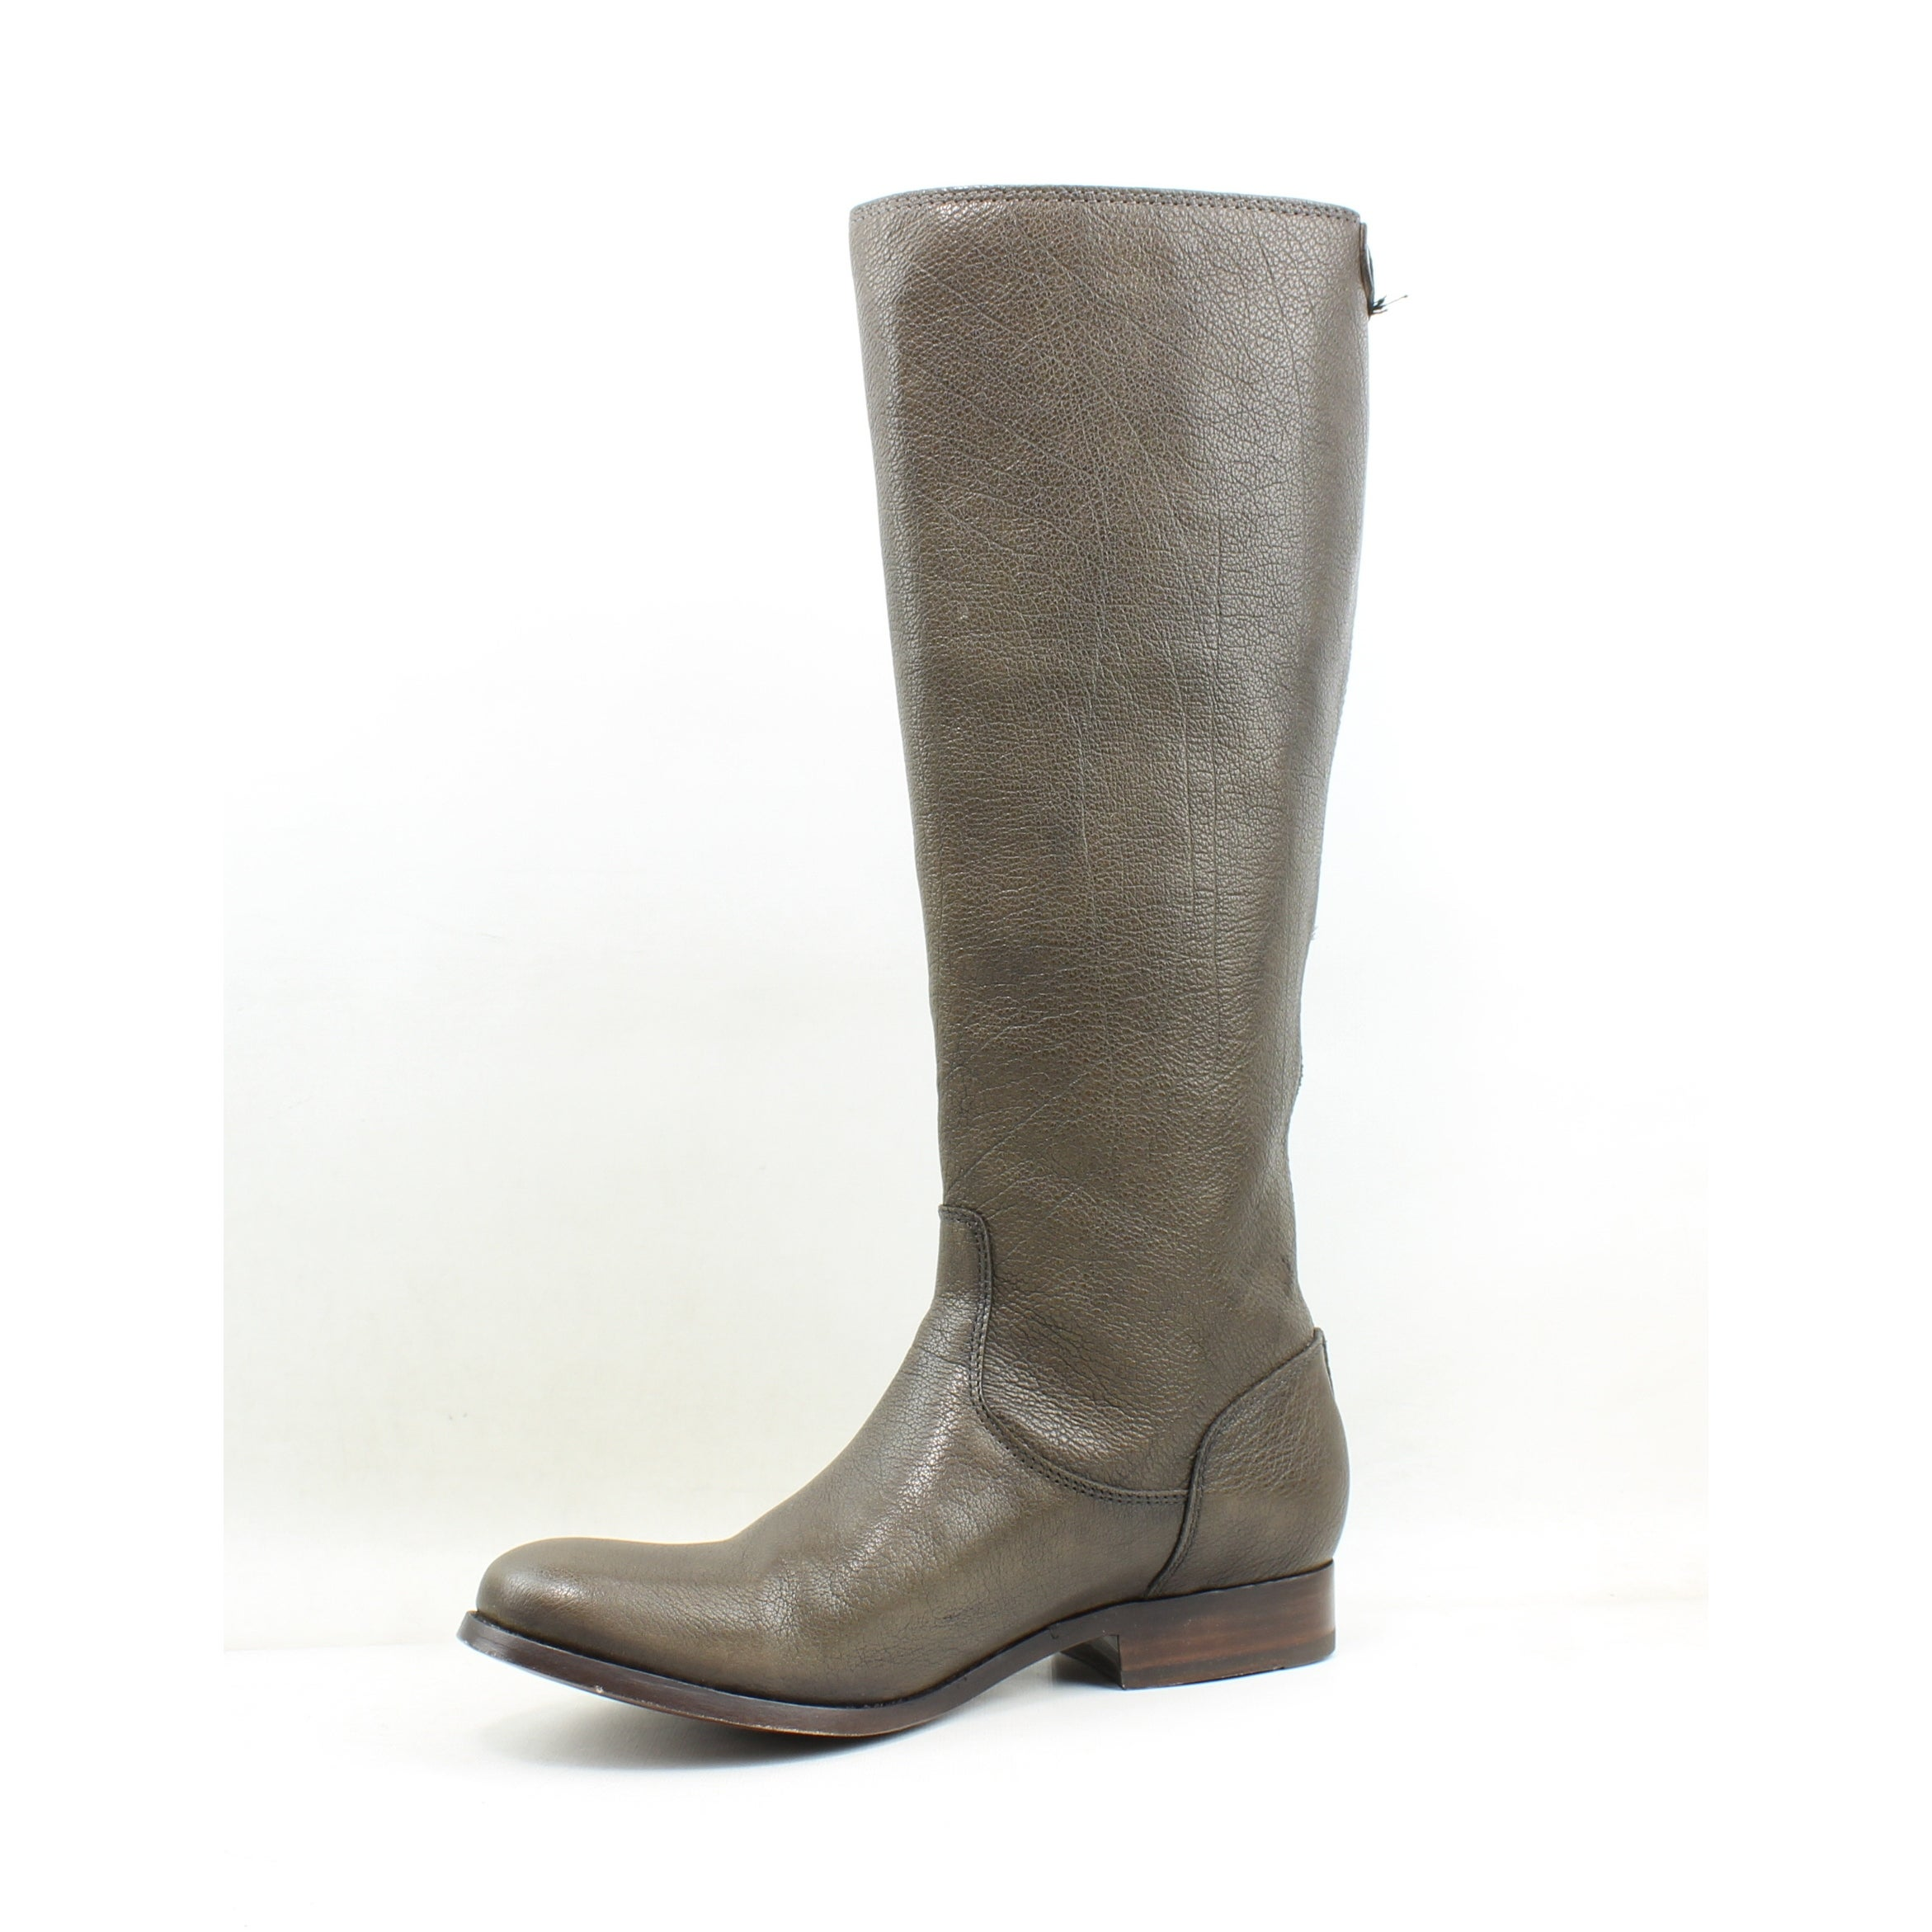 ac9ed62d243 Shop Frye Womens Melissa Button Back Zip Knee-High Brown Riding Boots Size  6.5 - Free Shipping Today - Overstock - 26949546